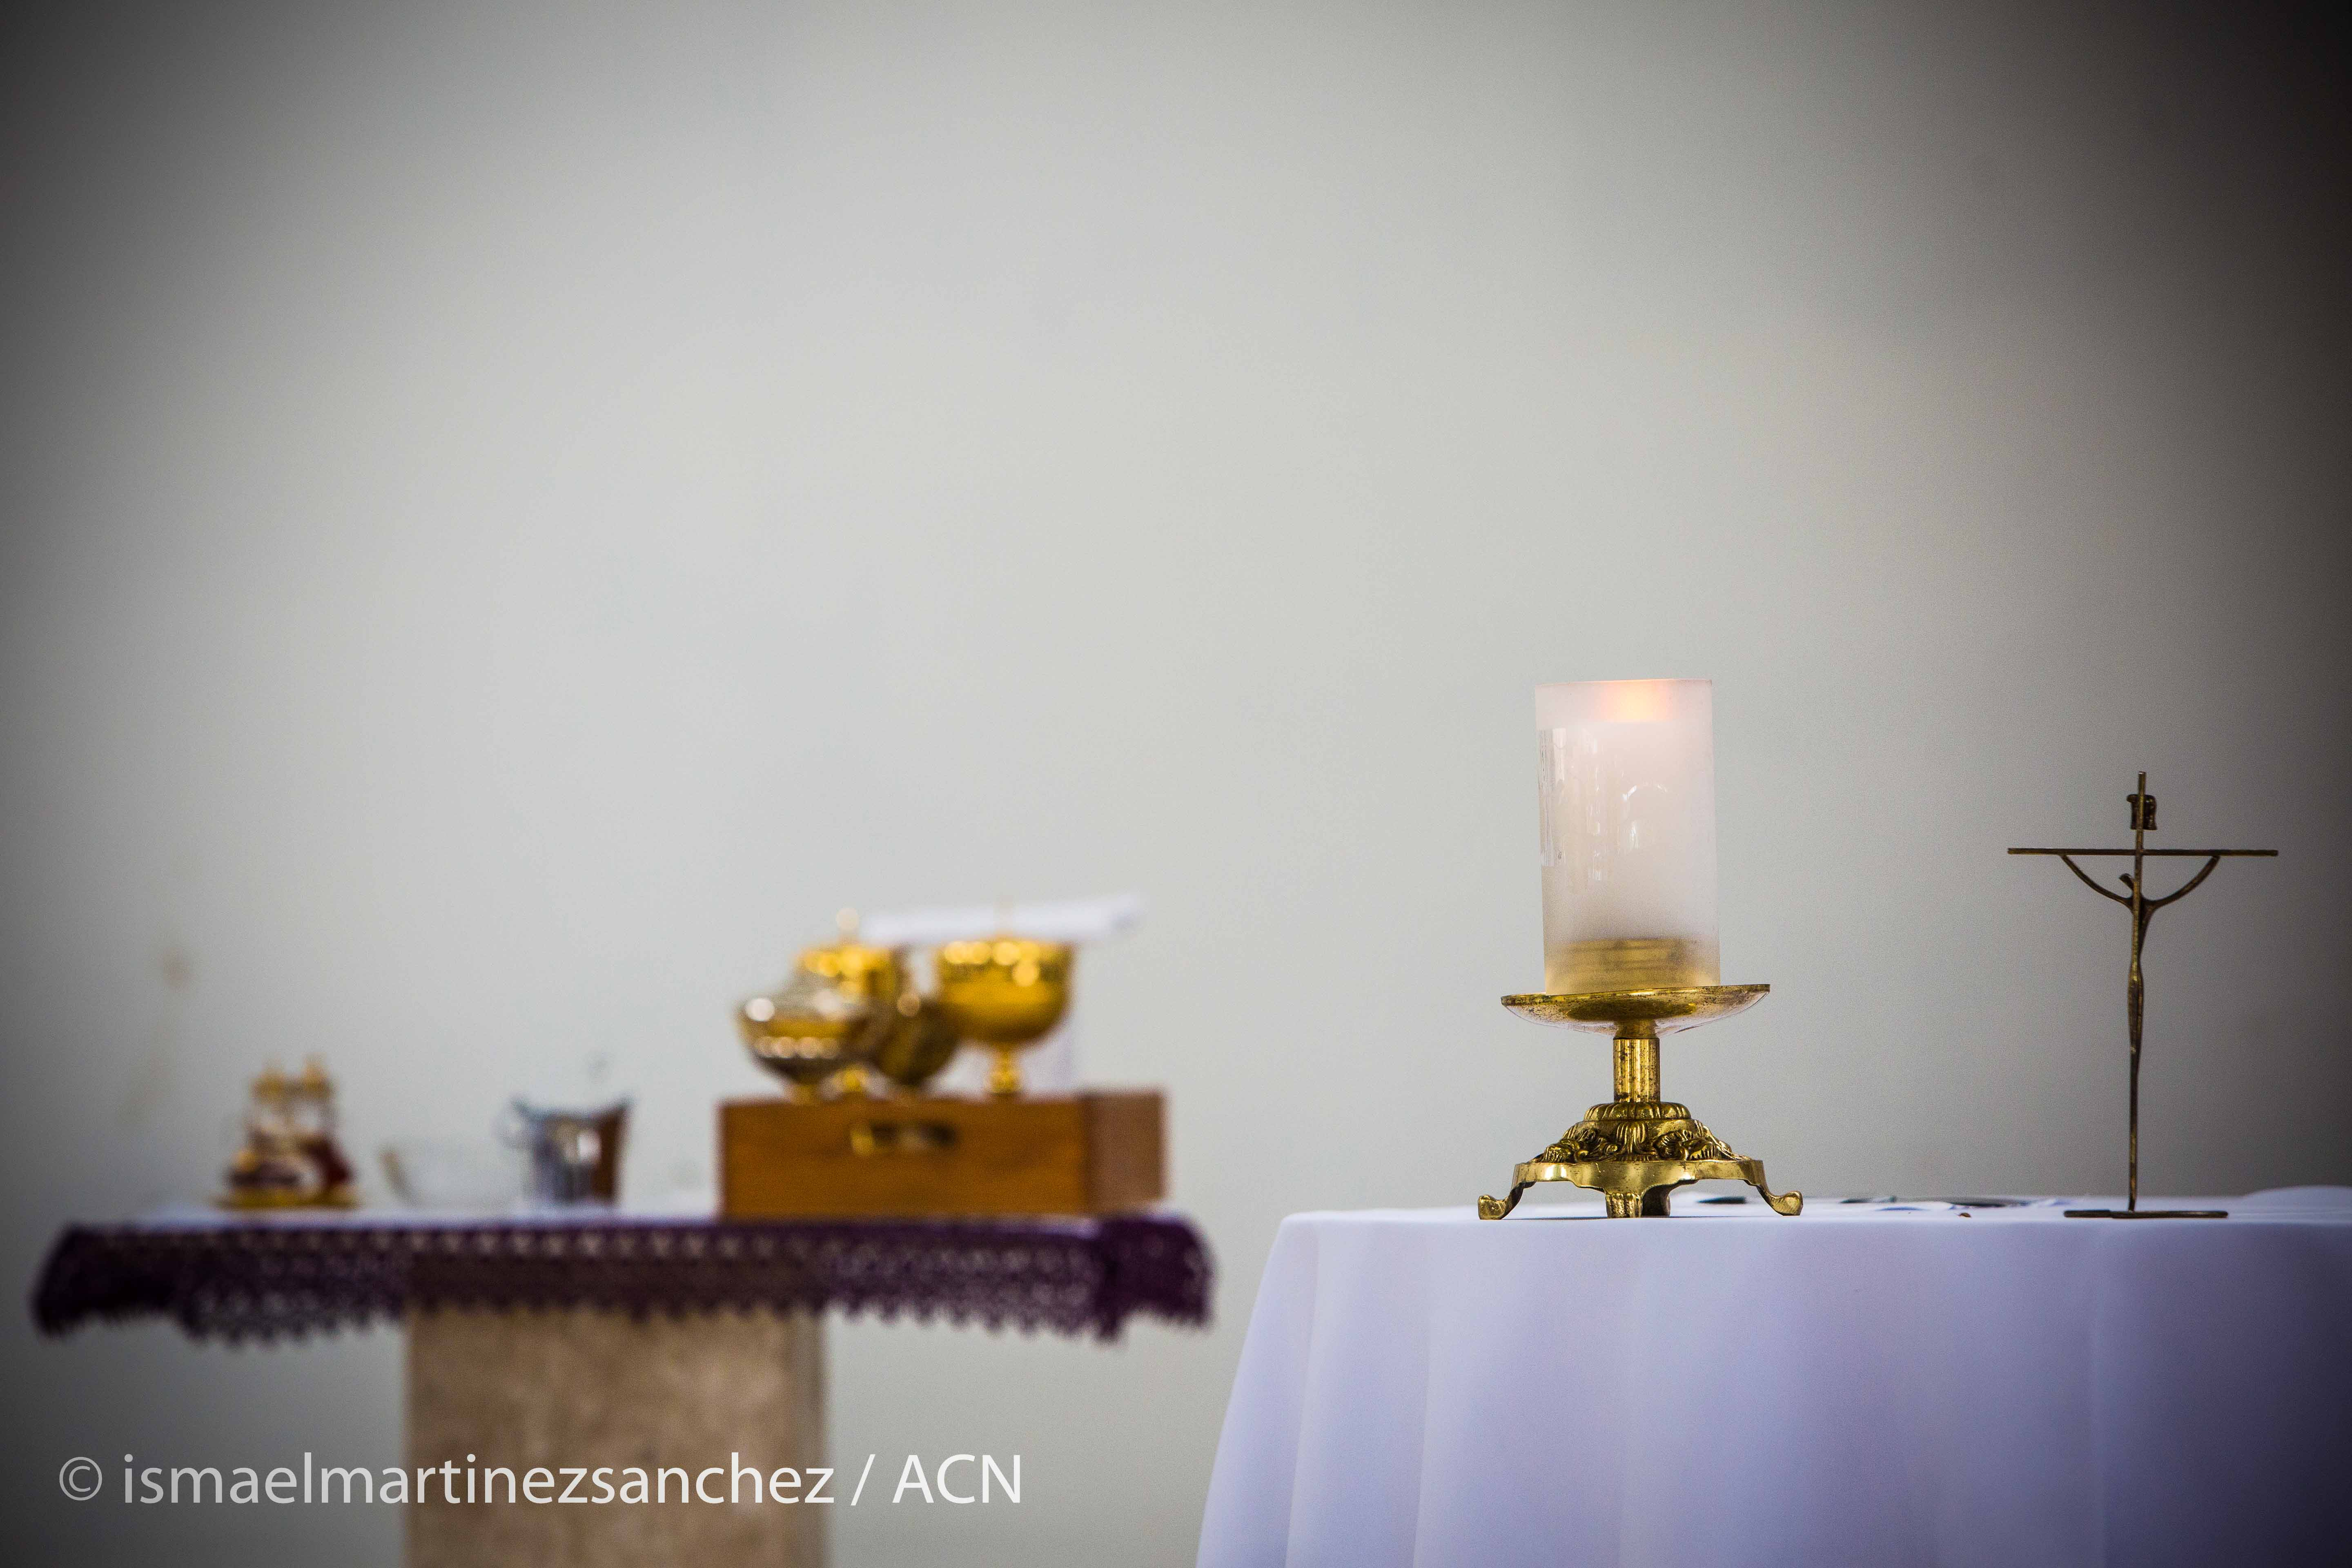 All prepared for the beginning of the Mass in the Spiritual Condominium of Uirapuru in Fortaleza.